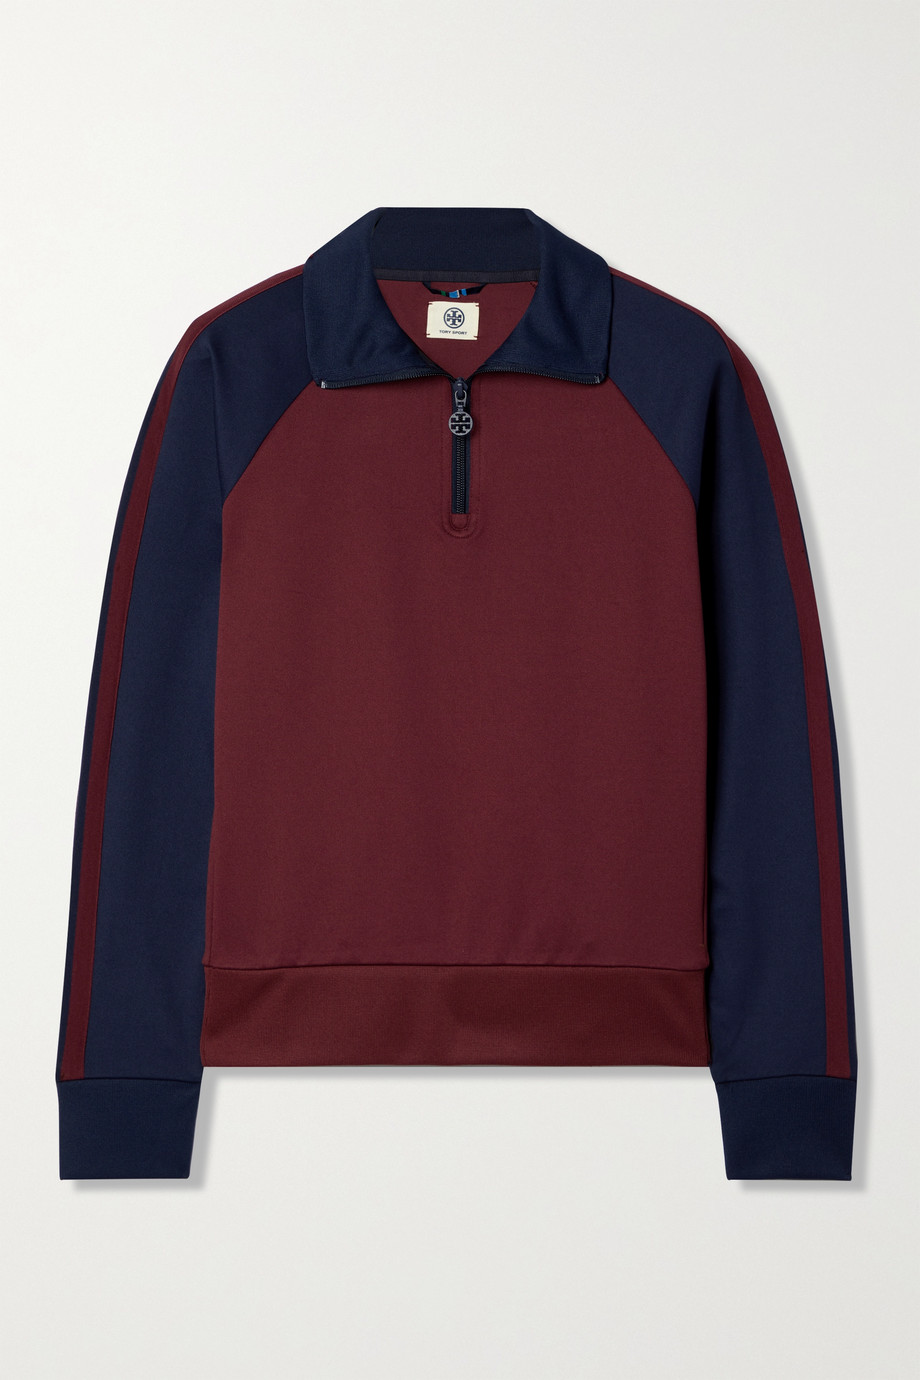 Tory Sport Two-tone tech-jersey track jacket